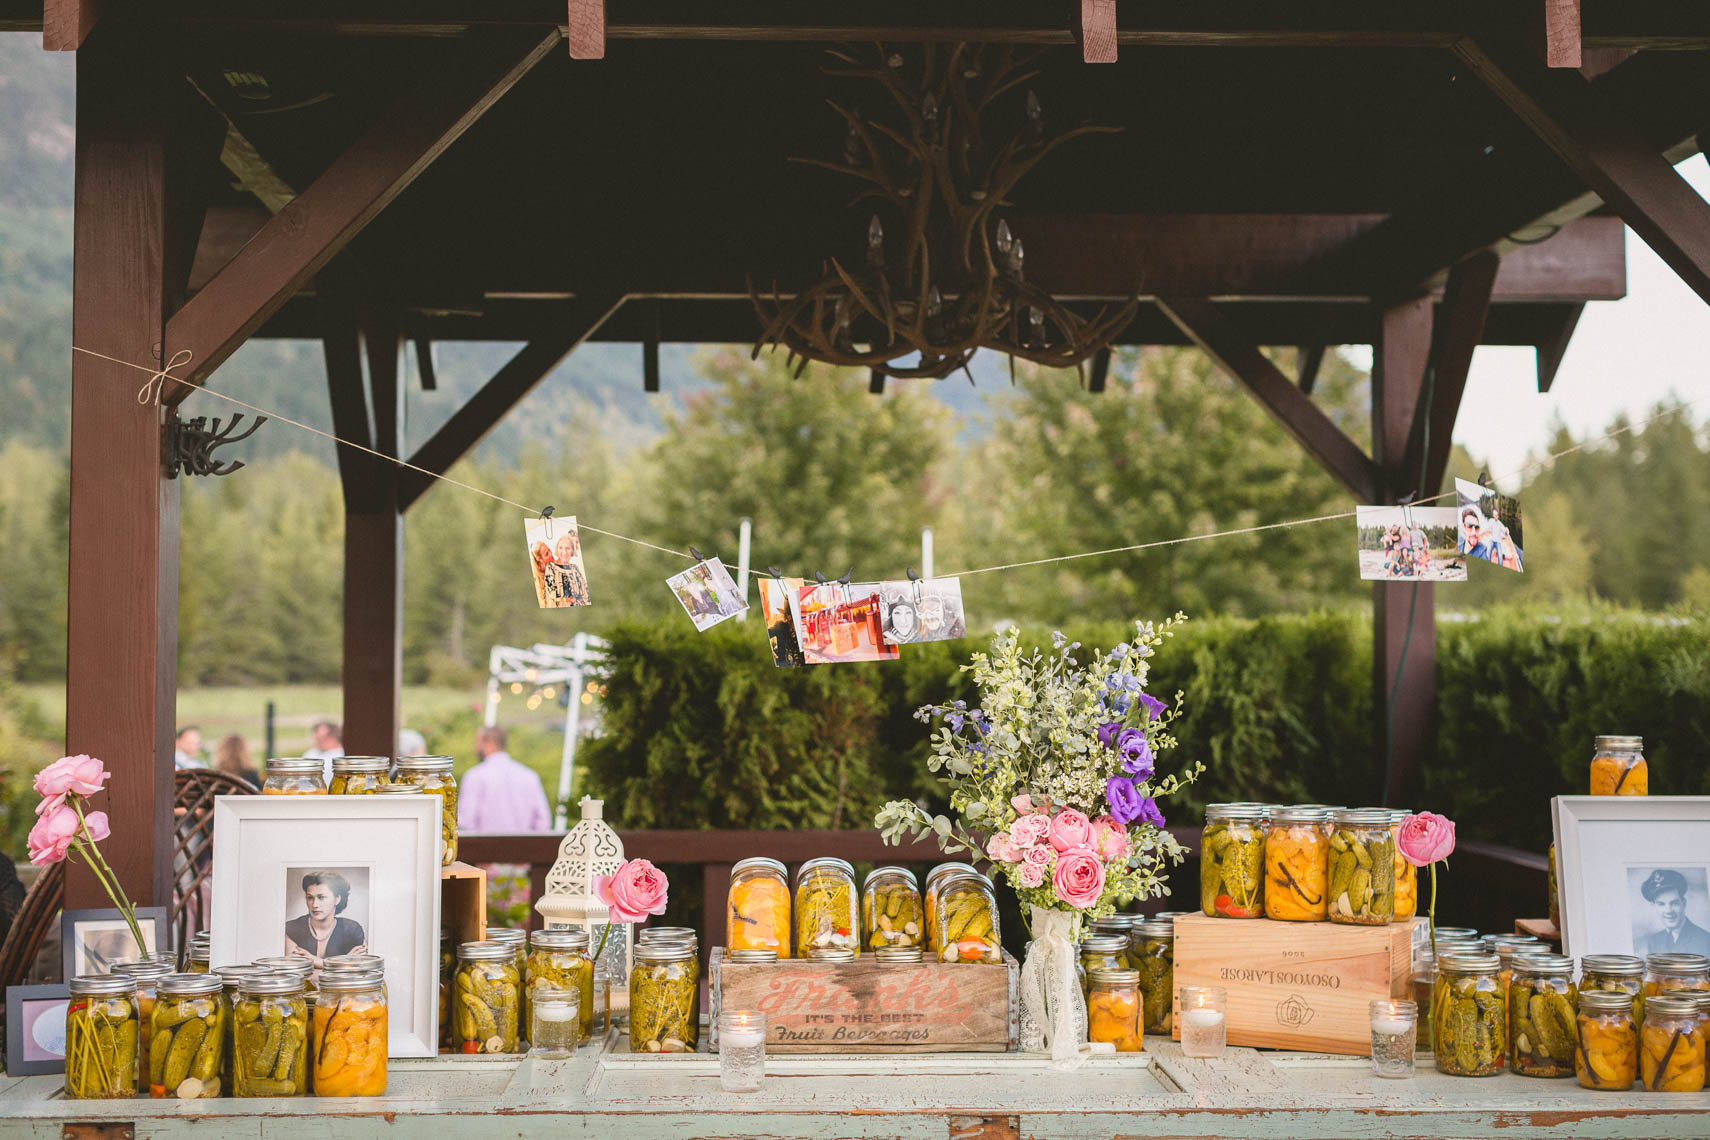 Closeup of jarred preserves at outdoor rustic farm wedding near Whistler, BC.